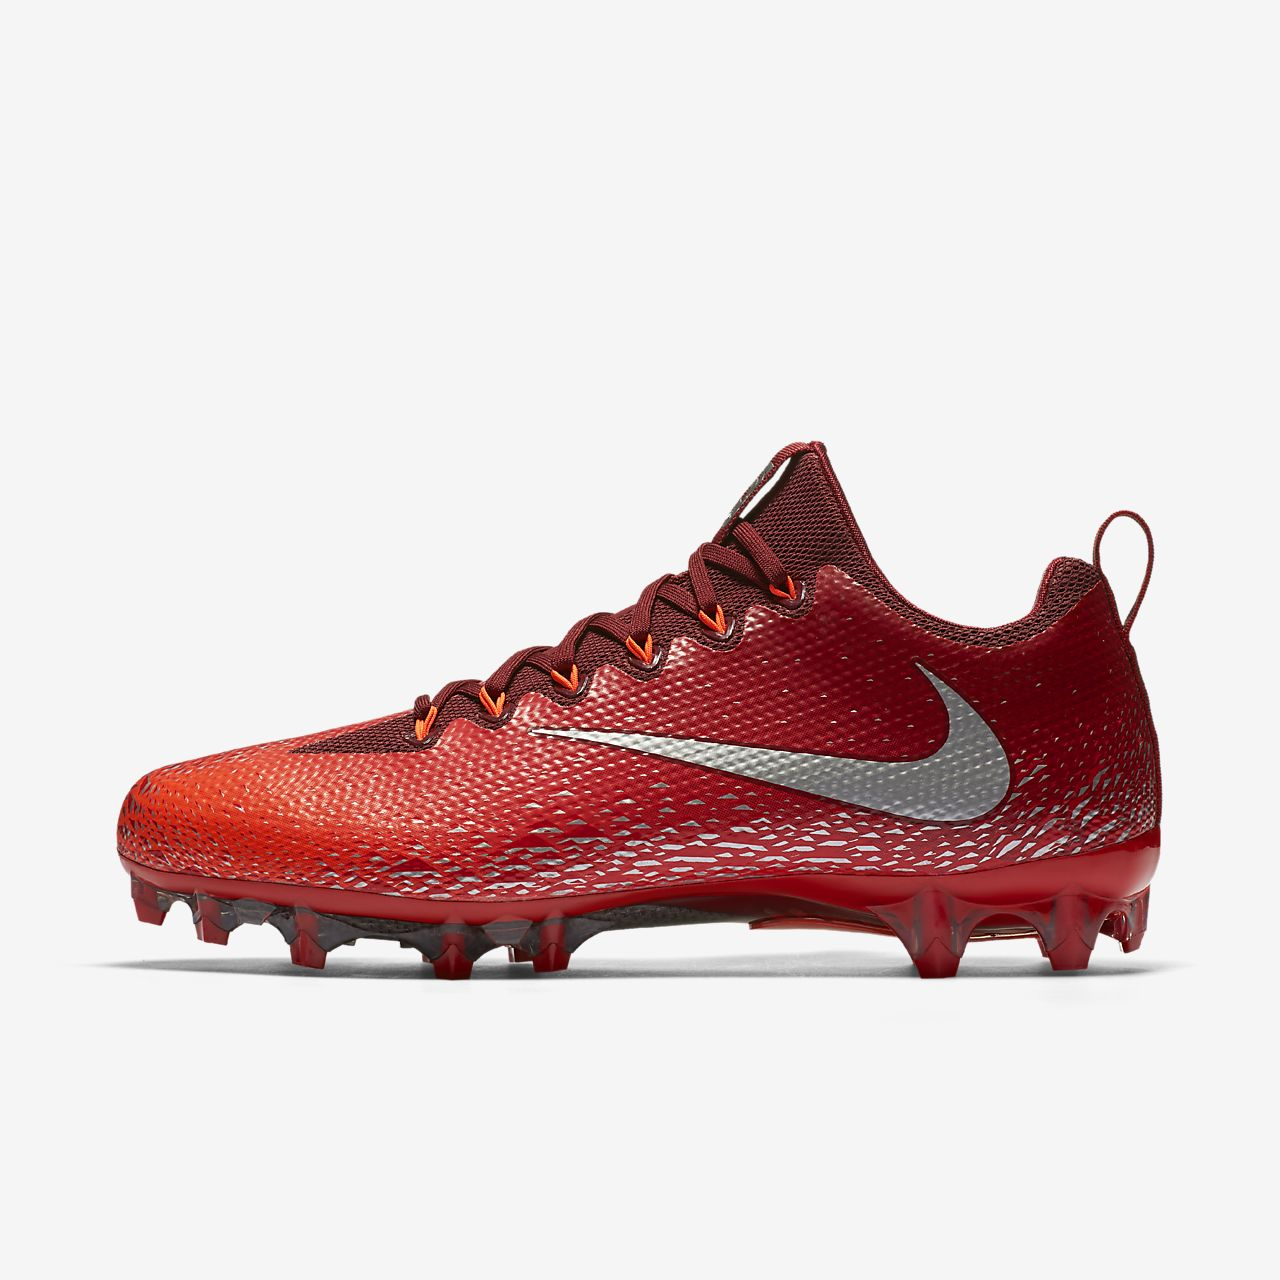 Nike Vapor Untouchable Pro Football Shoes Team Red/Total Crimson/University Red/Metallic Silver